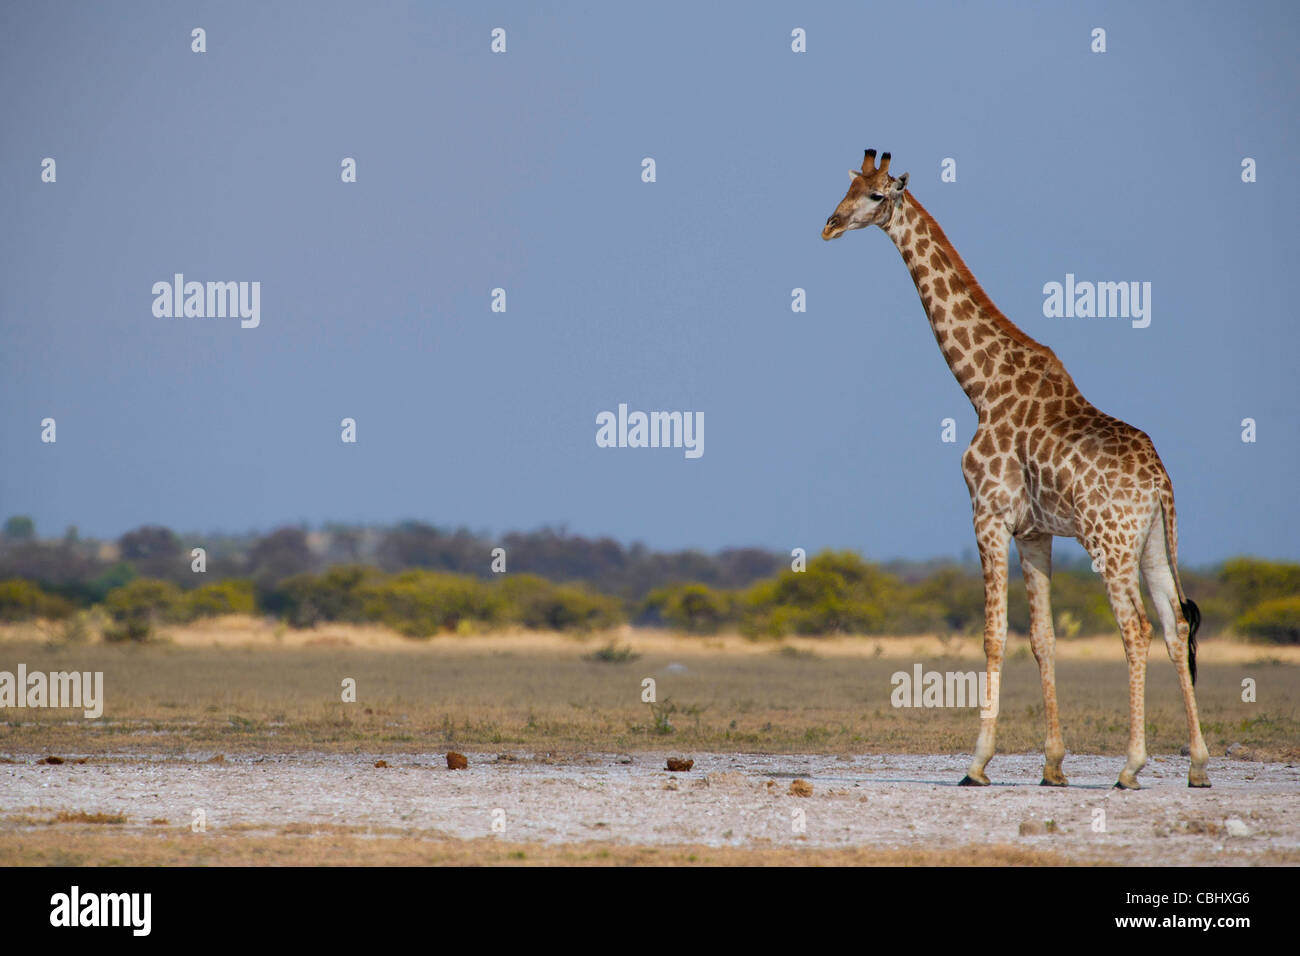 Une Girafe (Giraffa camelopardalis) capturé sur l'un des salines à Nxai Pan National Park, Botswana Photo Stock